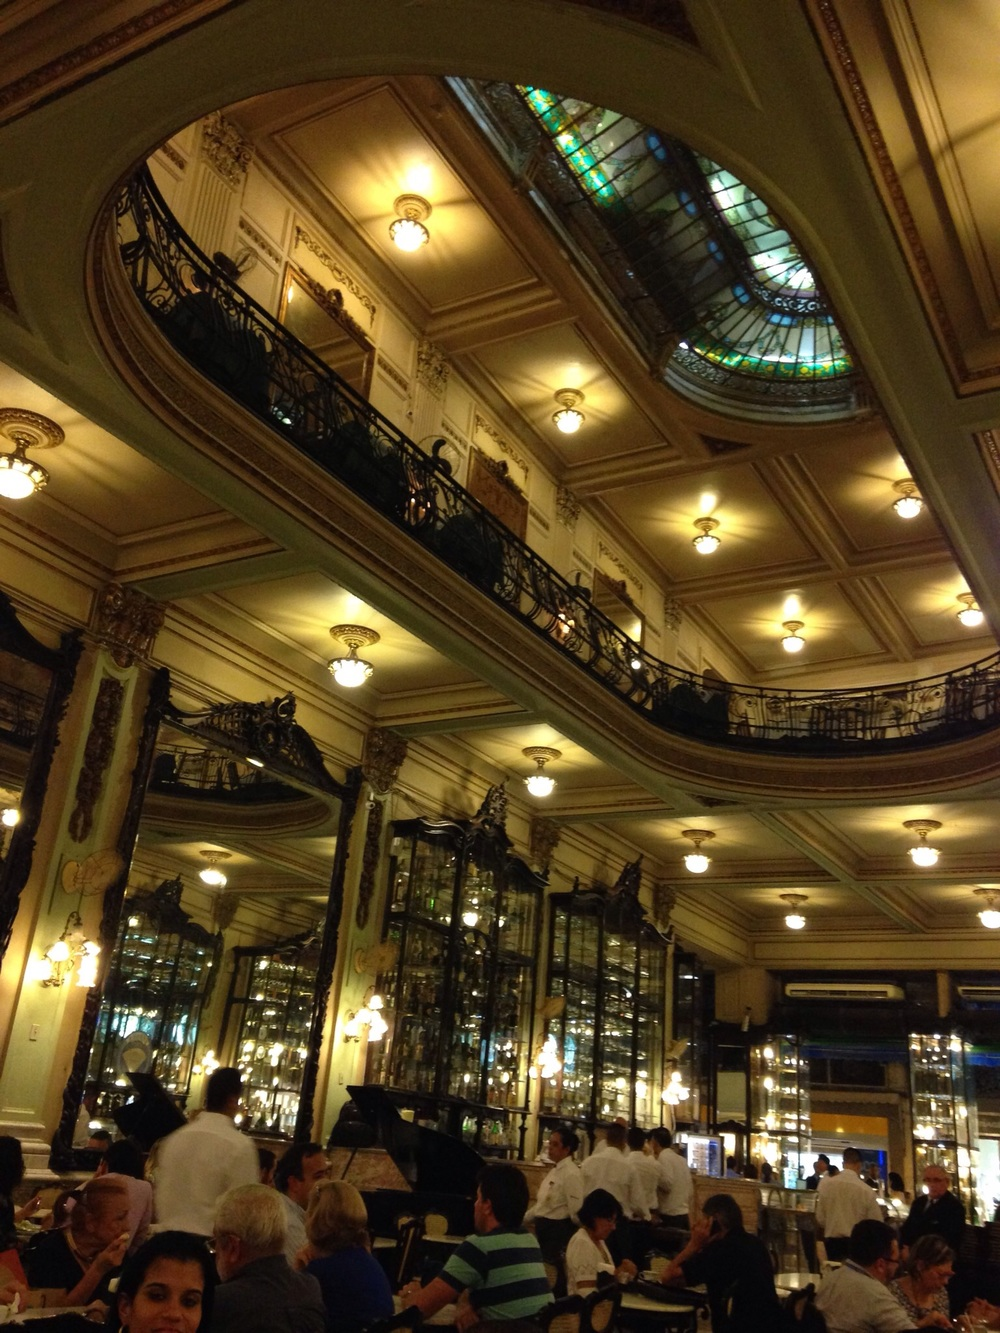 Confeitaria Colombo - a cafe with true art nouveau style